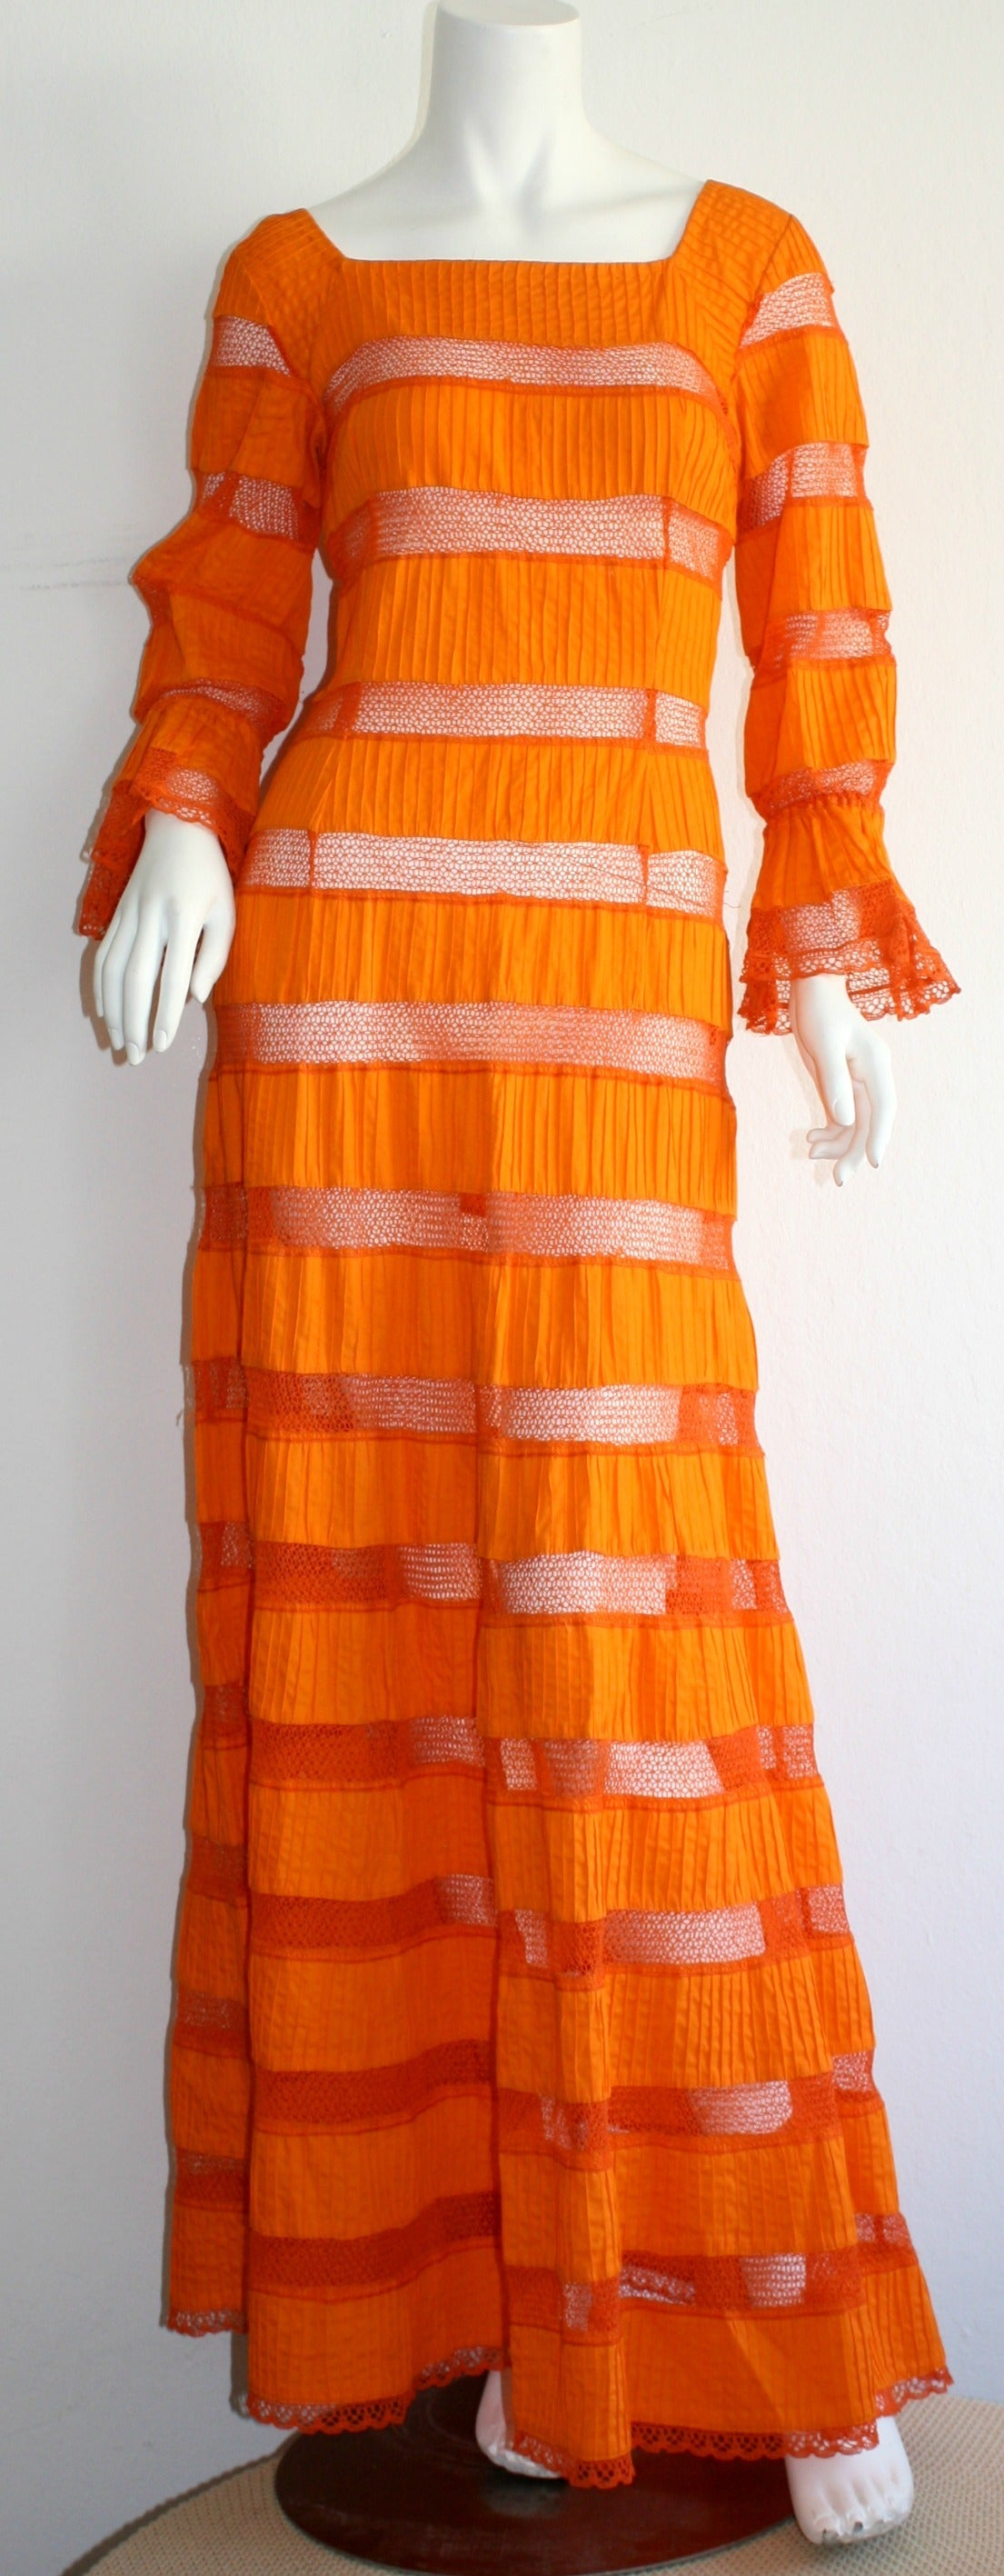 Tachi Castillo Vintage 1970s Orange Cotton Crochet Mexican Maxi Dress 2